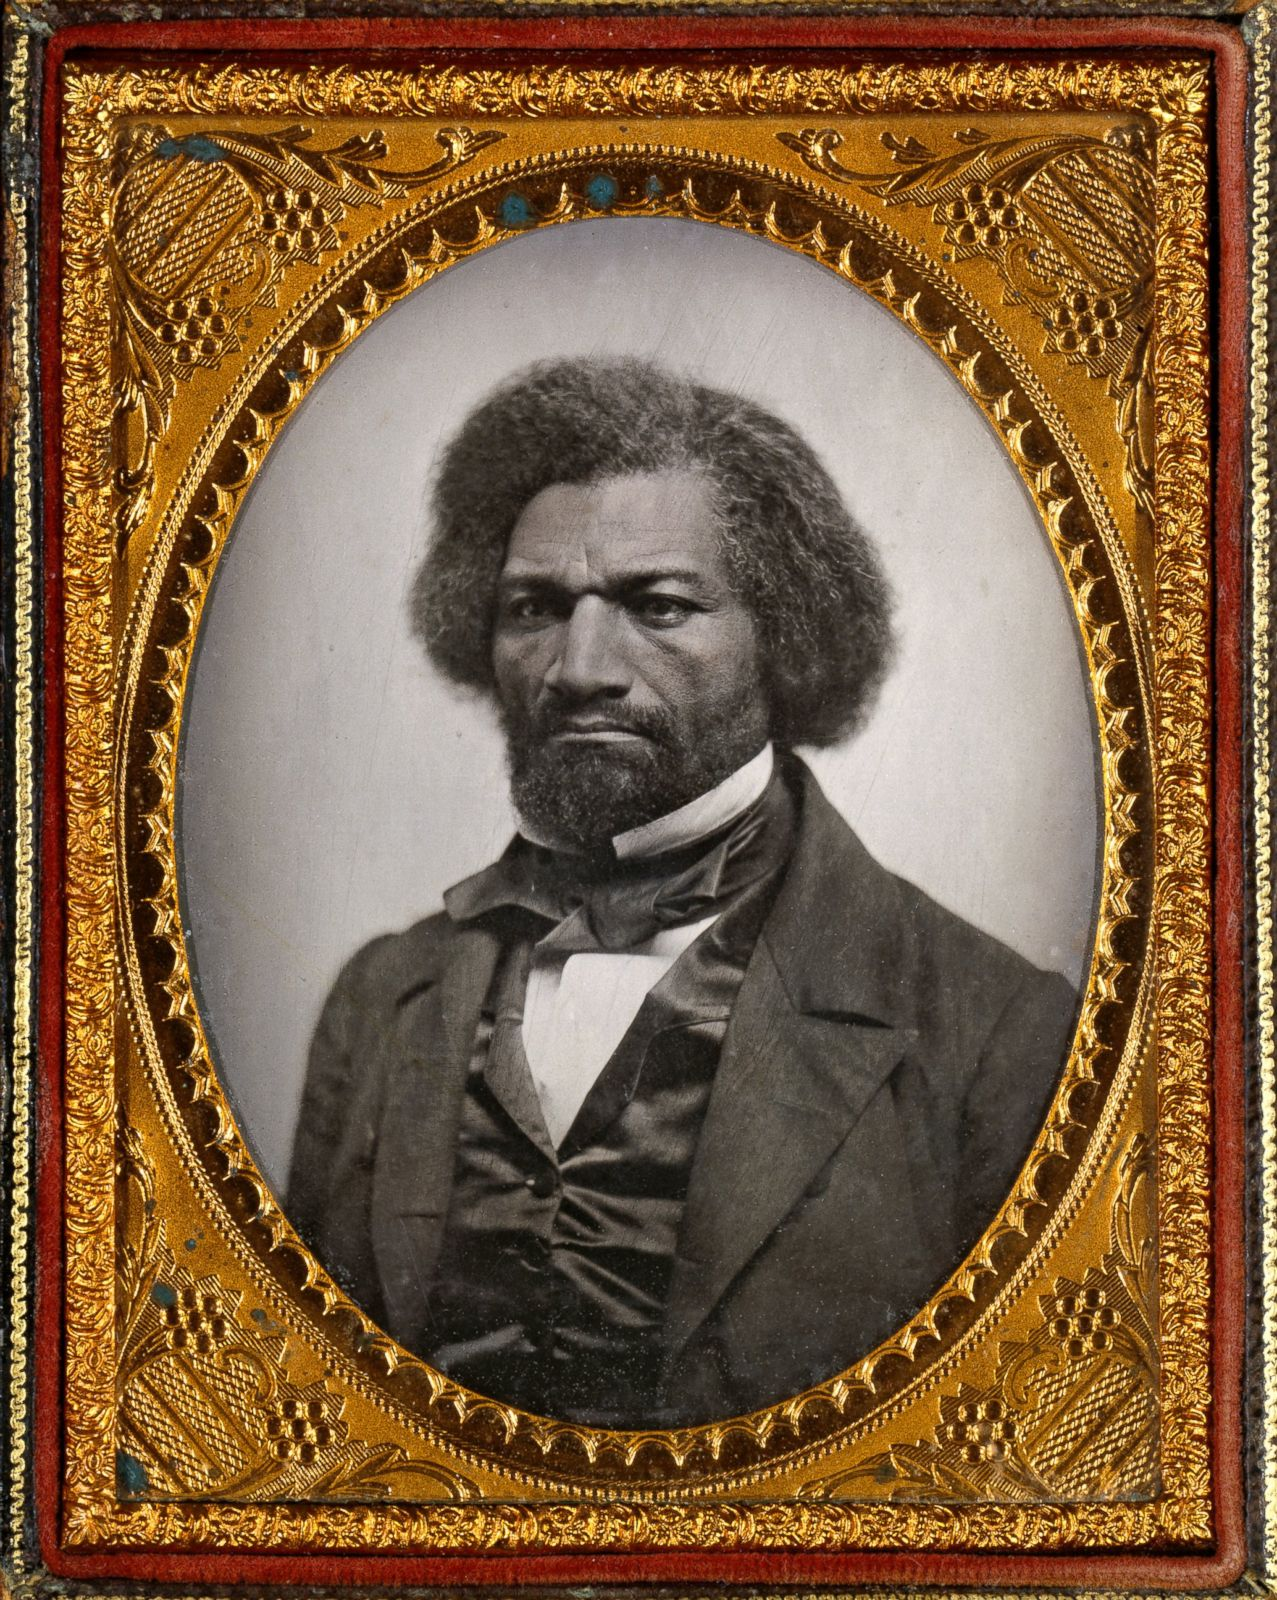 an analysis of the concpet of fate in the narrative of the life of frederick douglass The narrative of frederick douglass chapter 4 summary & analysis from litcharts | the creators of sparknotes  ben the narrative of frederick douglass chapter 4 .